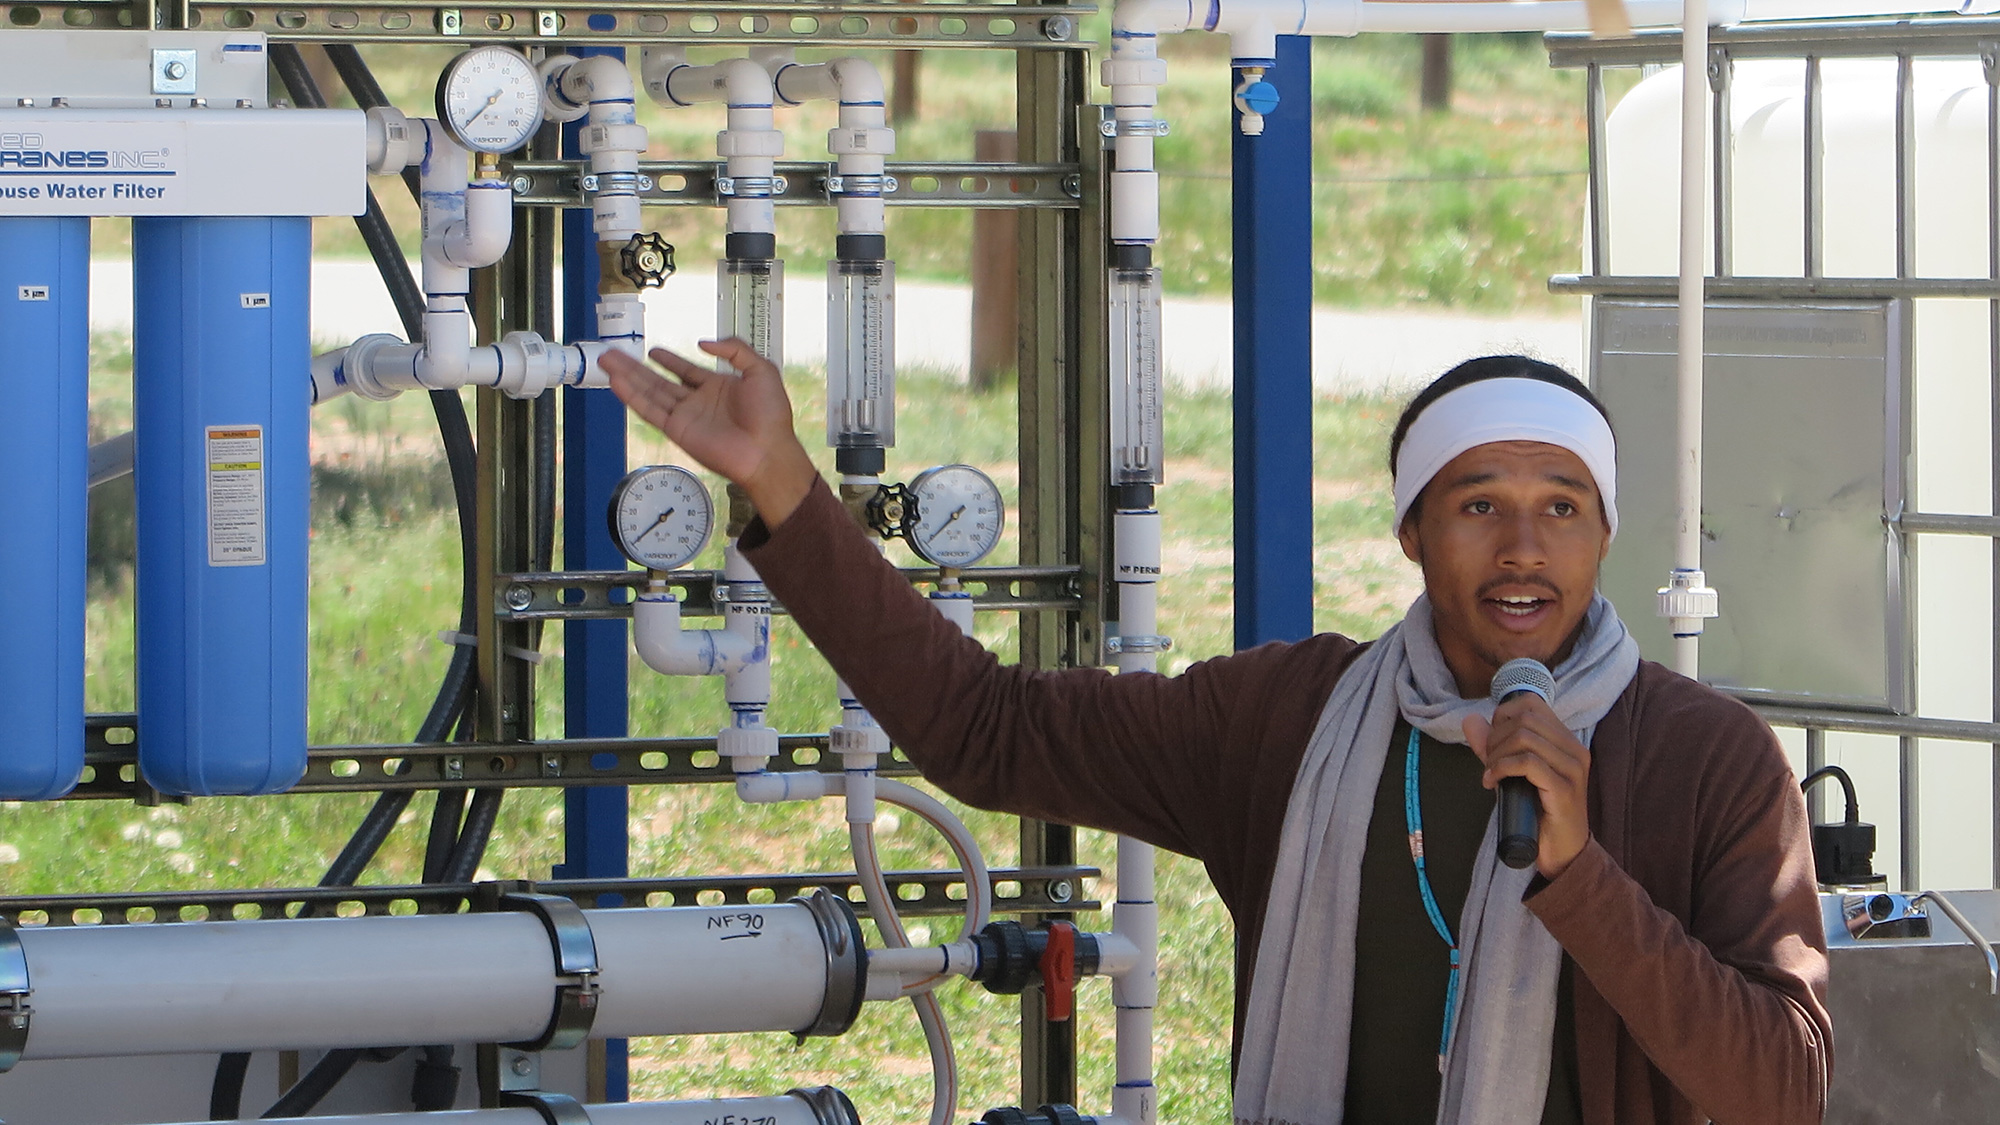 Diné College student and Indige-FEWSS participant Larry Moore demonstrates use of the solar-powered water filtration system to community members on Navajo Nation.